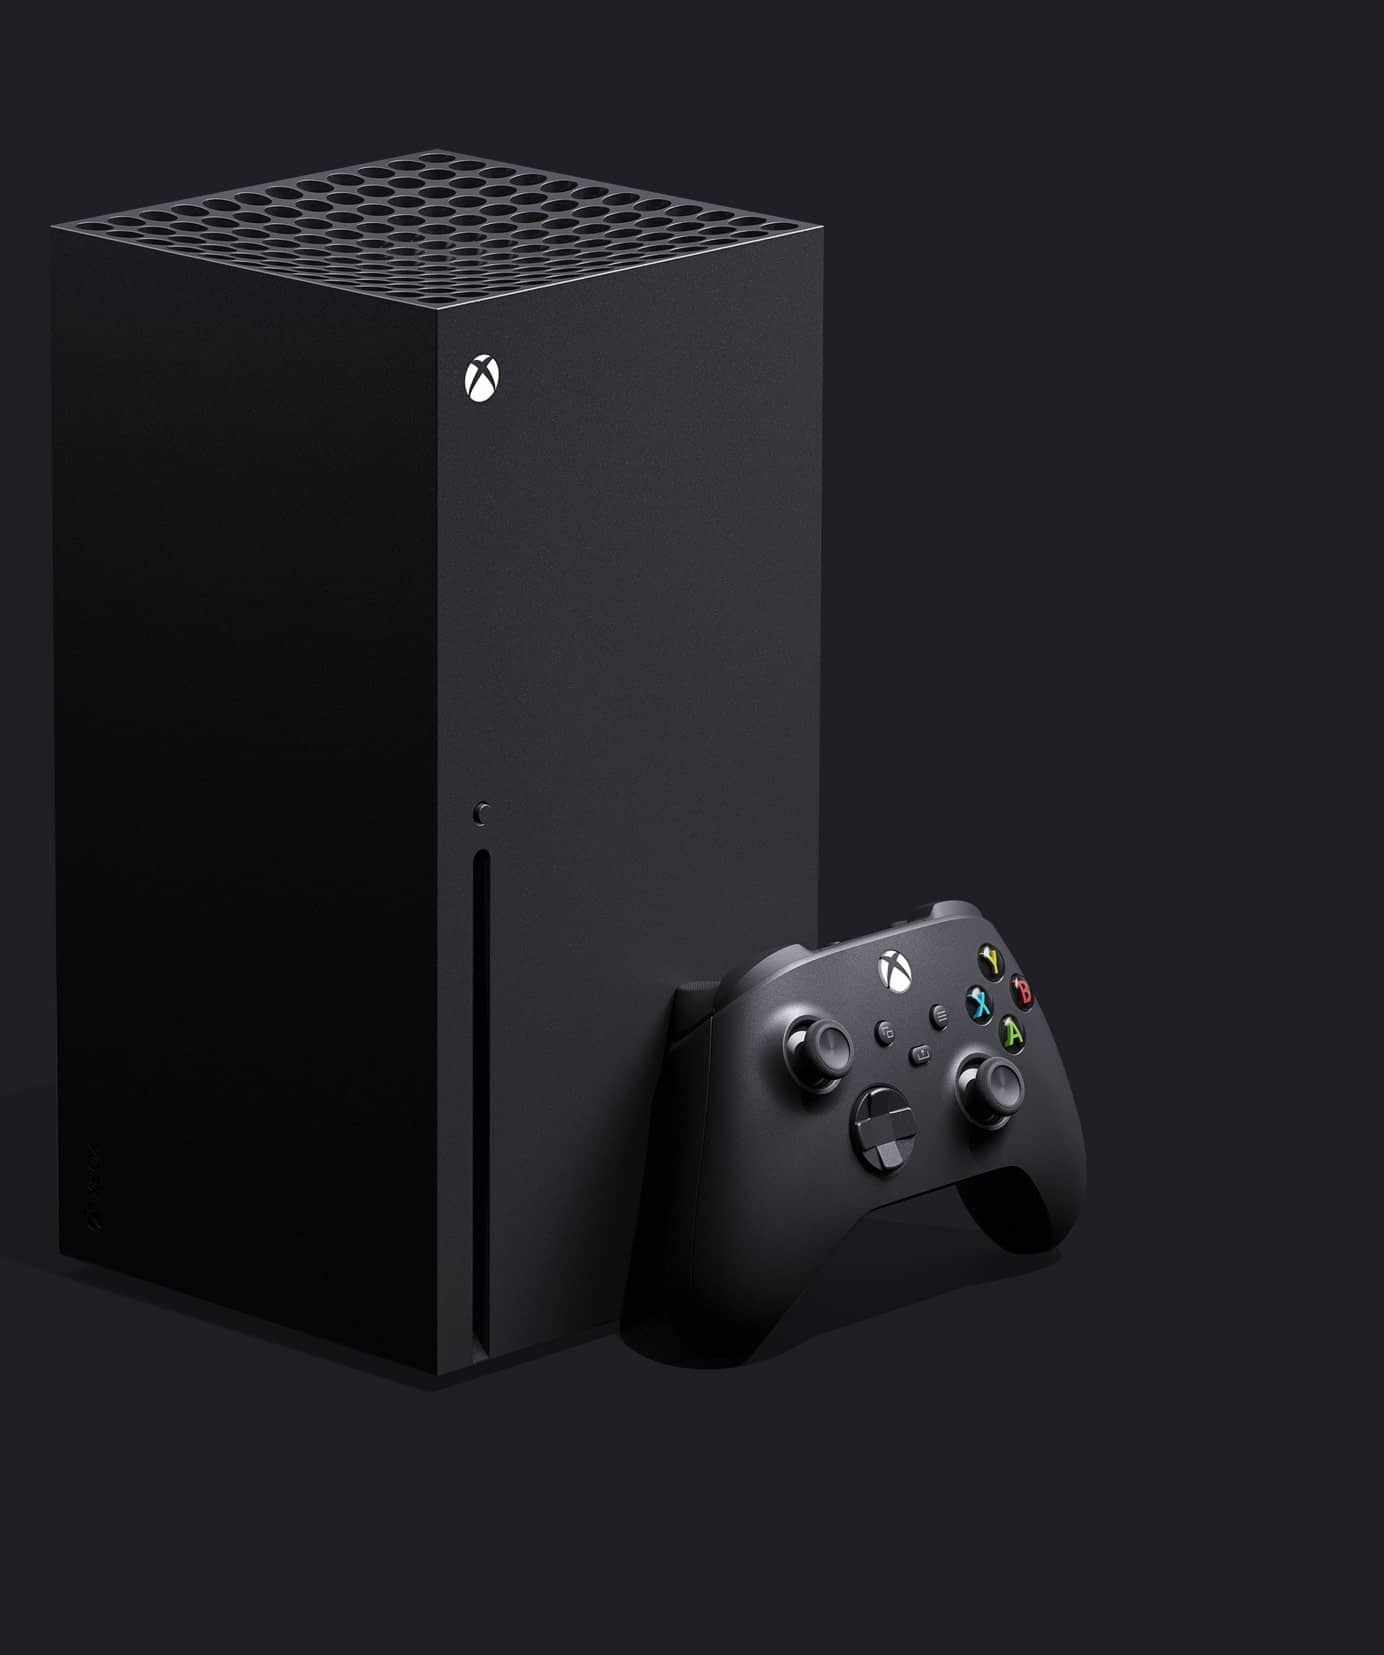 XBOX SERIES X - THE FUTURE OF GAMING